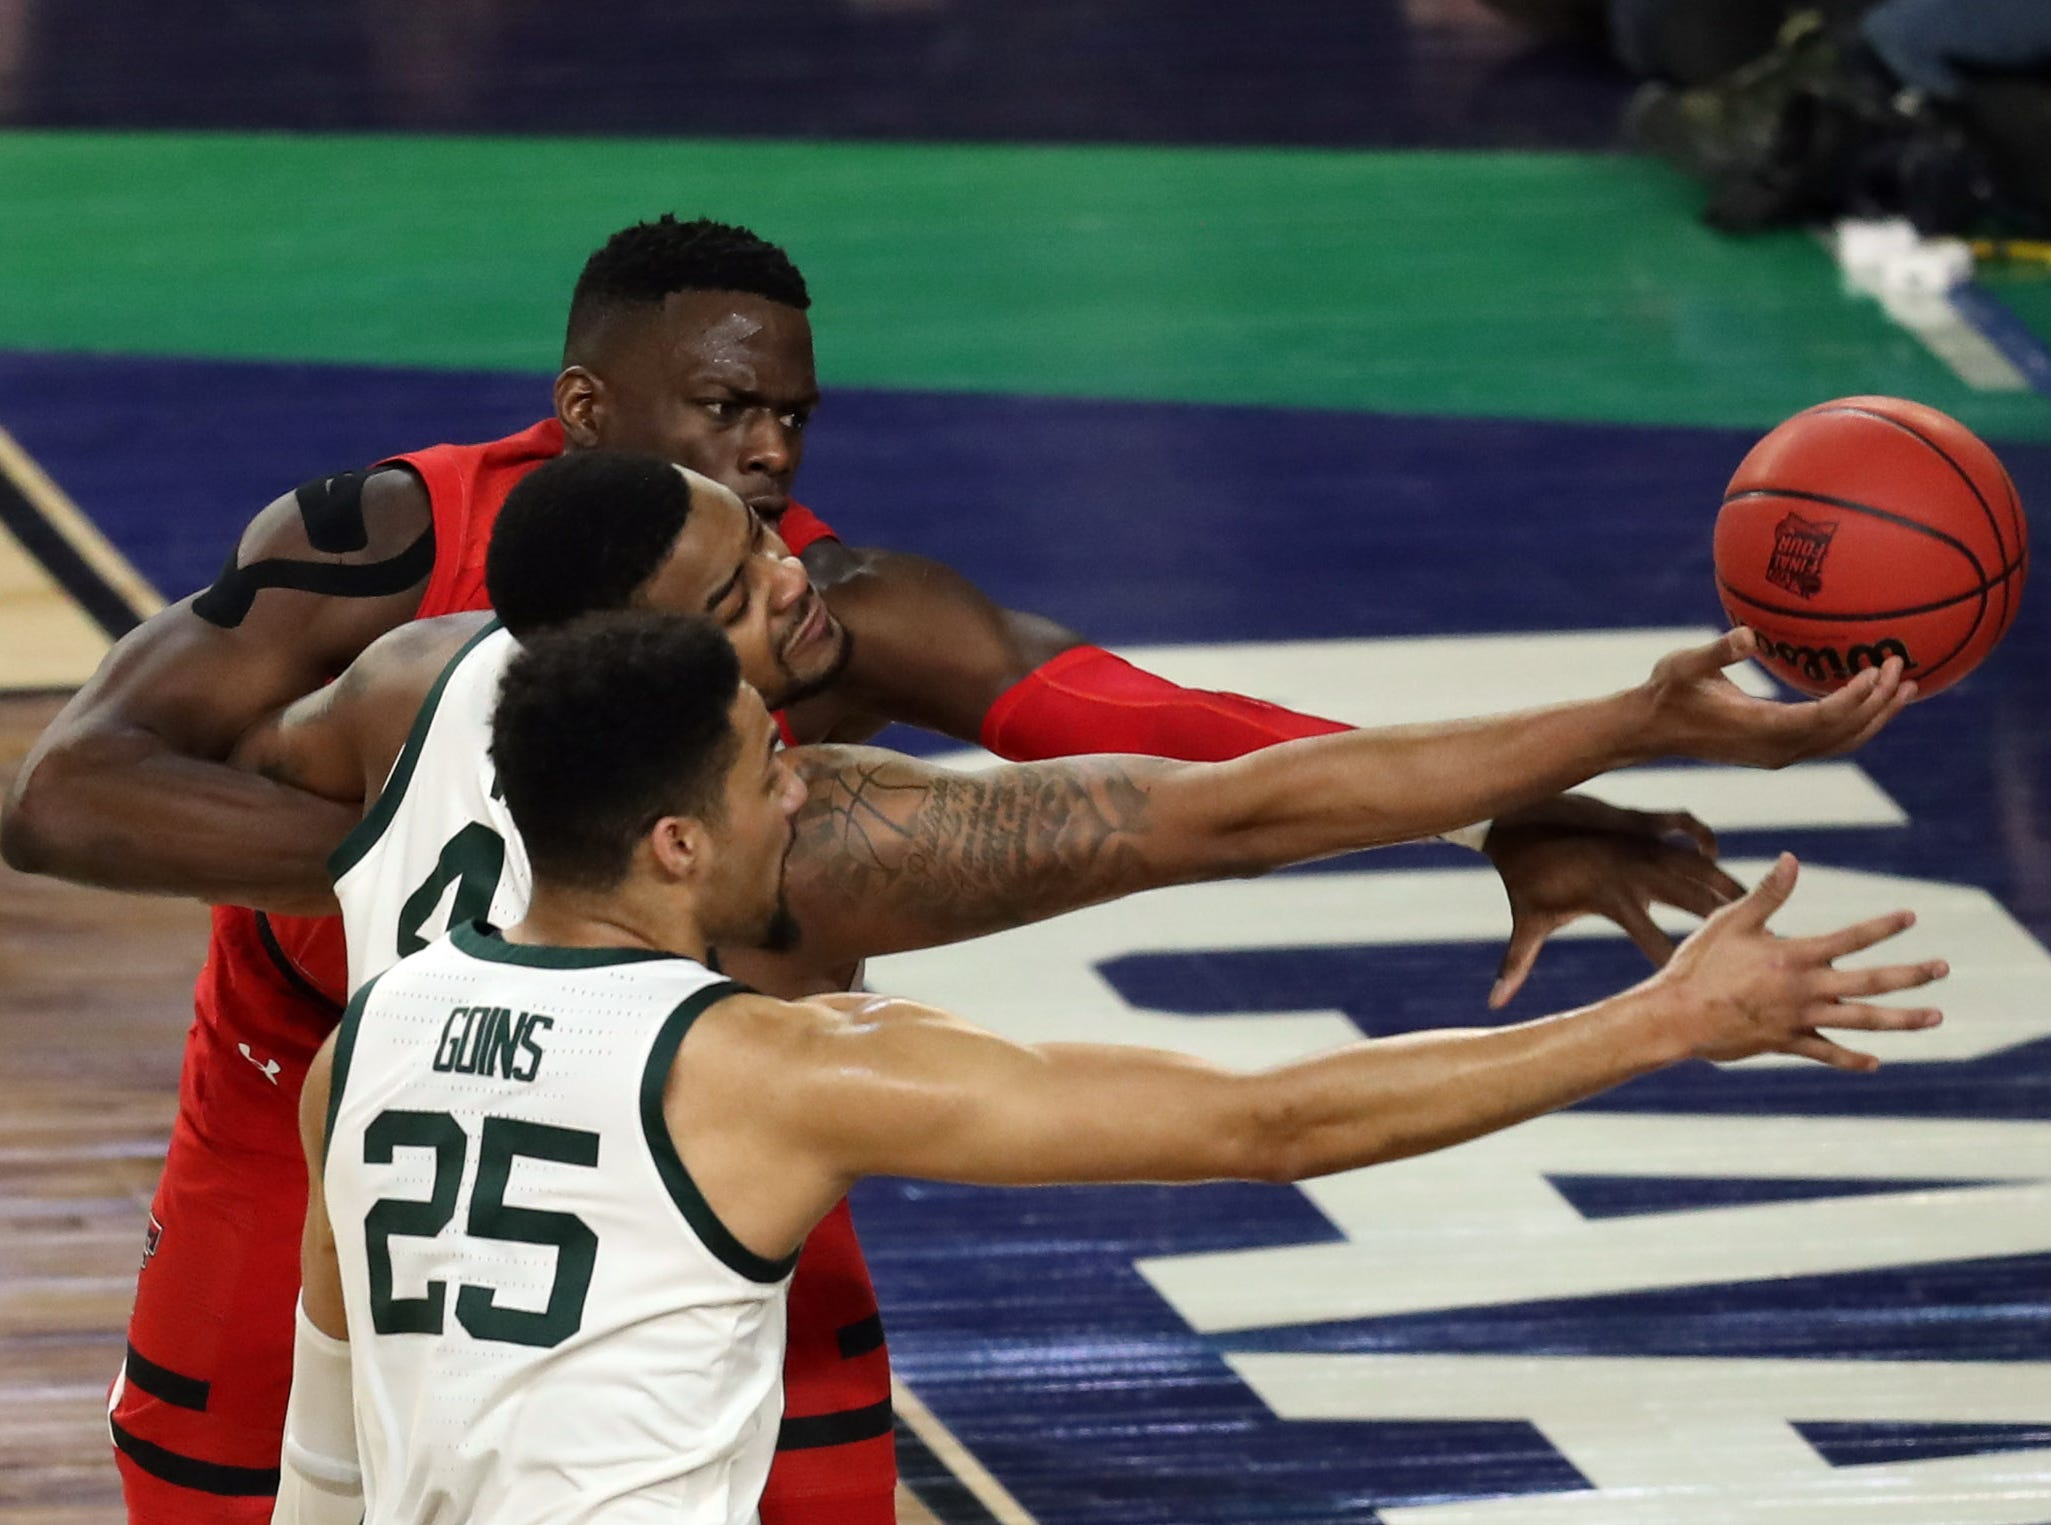 Texas Tech Red Raiders center Norense Odiase (32) and Michigan State Spartans forwards Nick Ward (44) and Kenny Goins (25) reach for the ball.